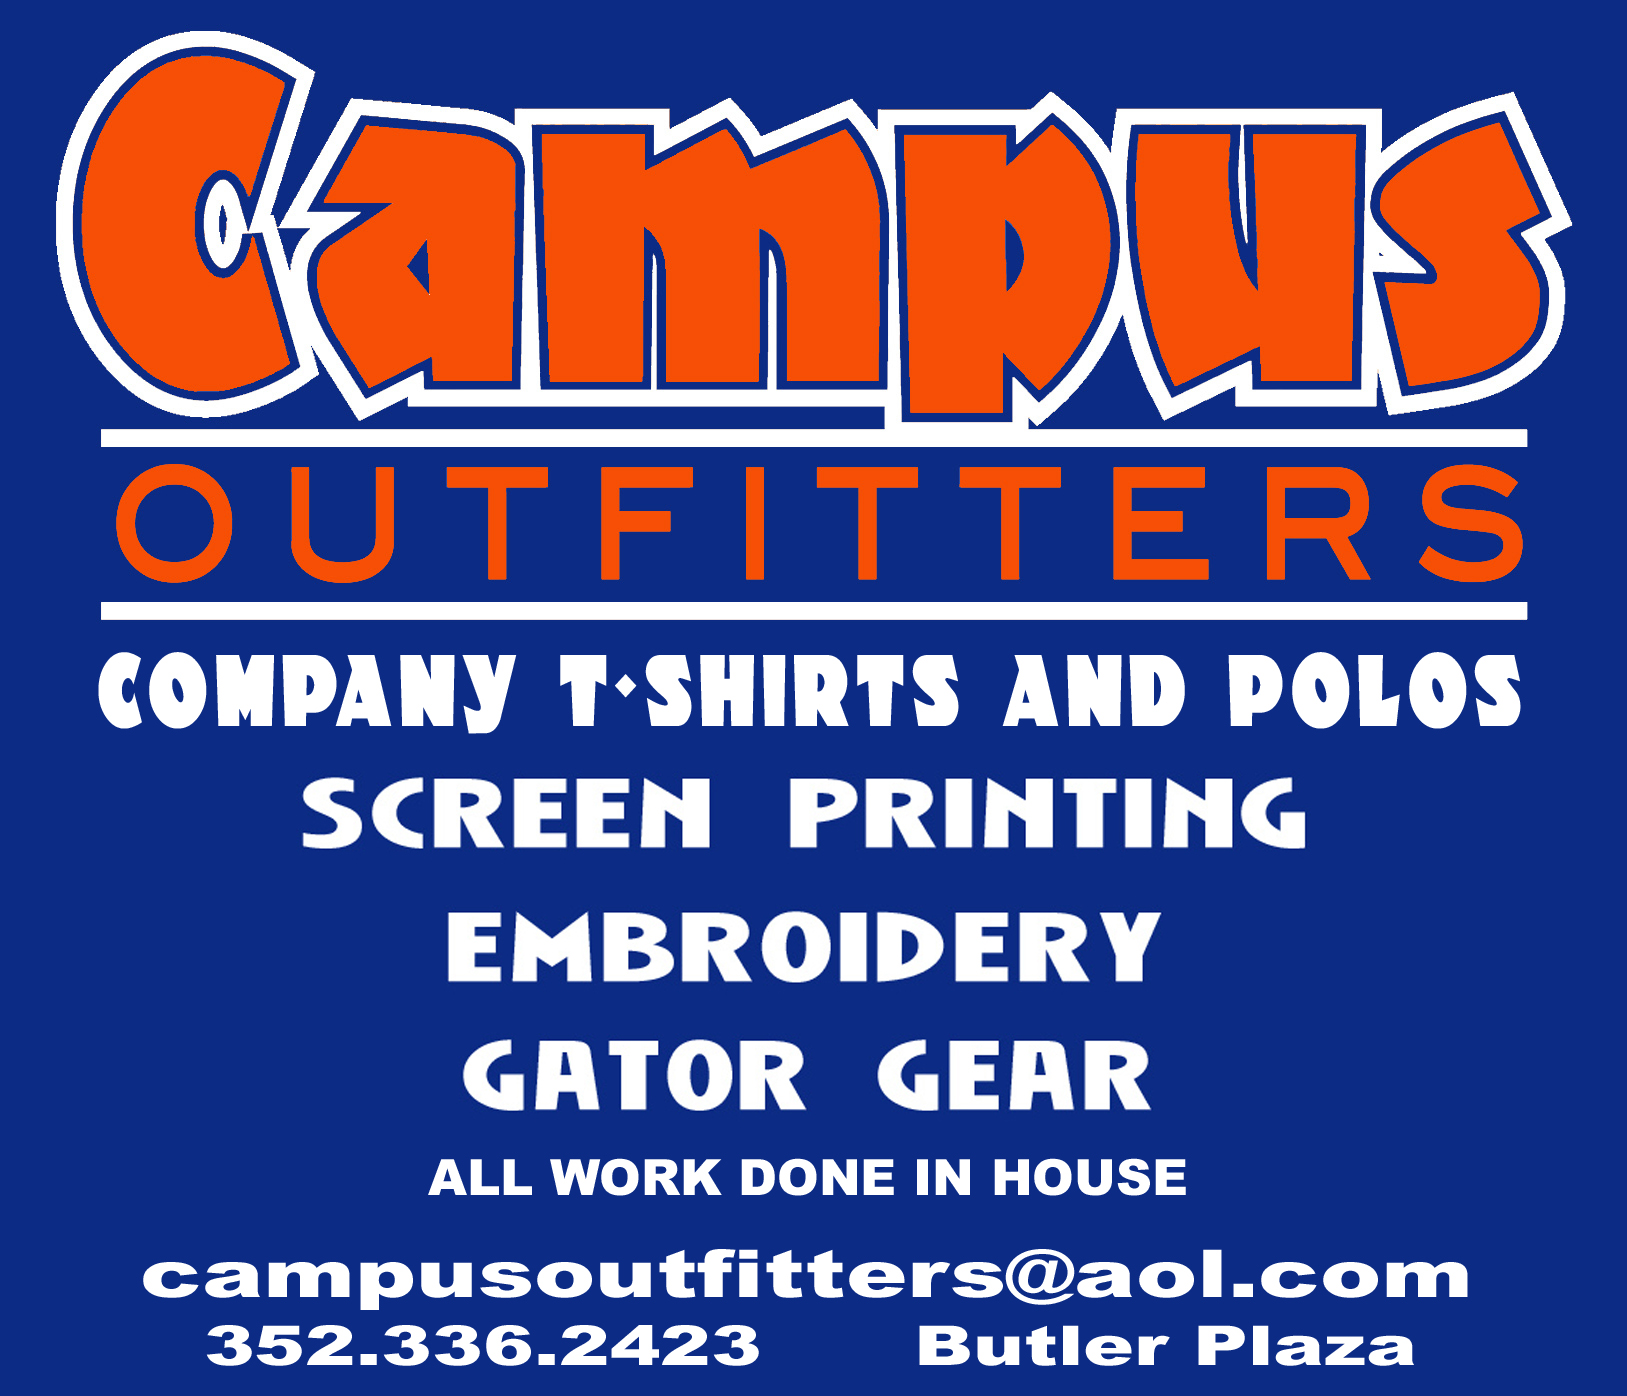 Campus outfitters custom embroidery and screen printing